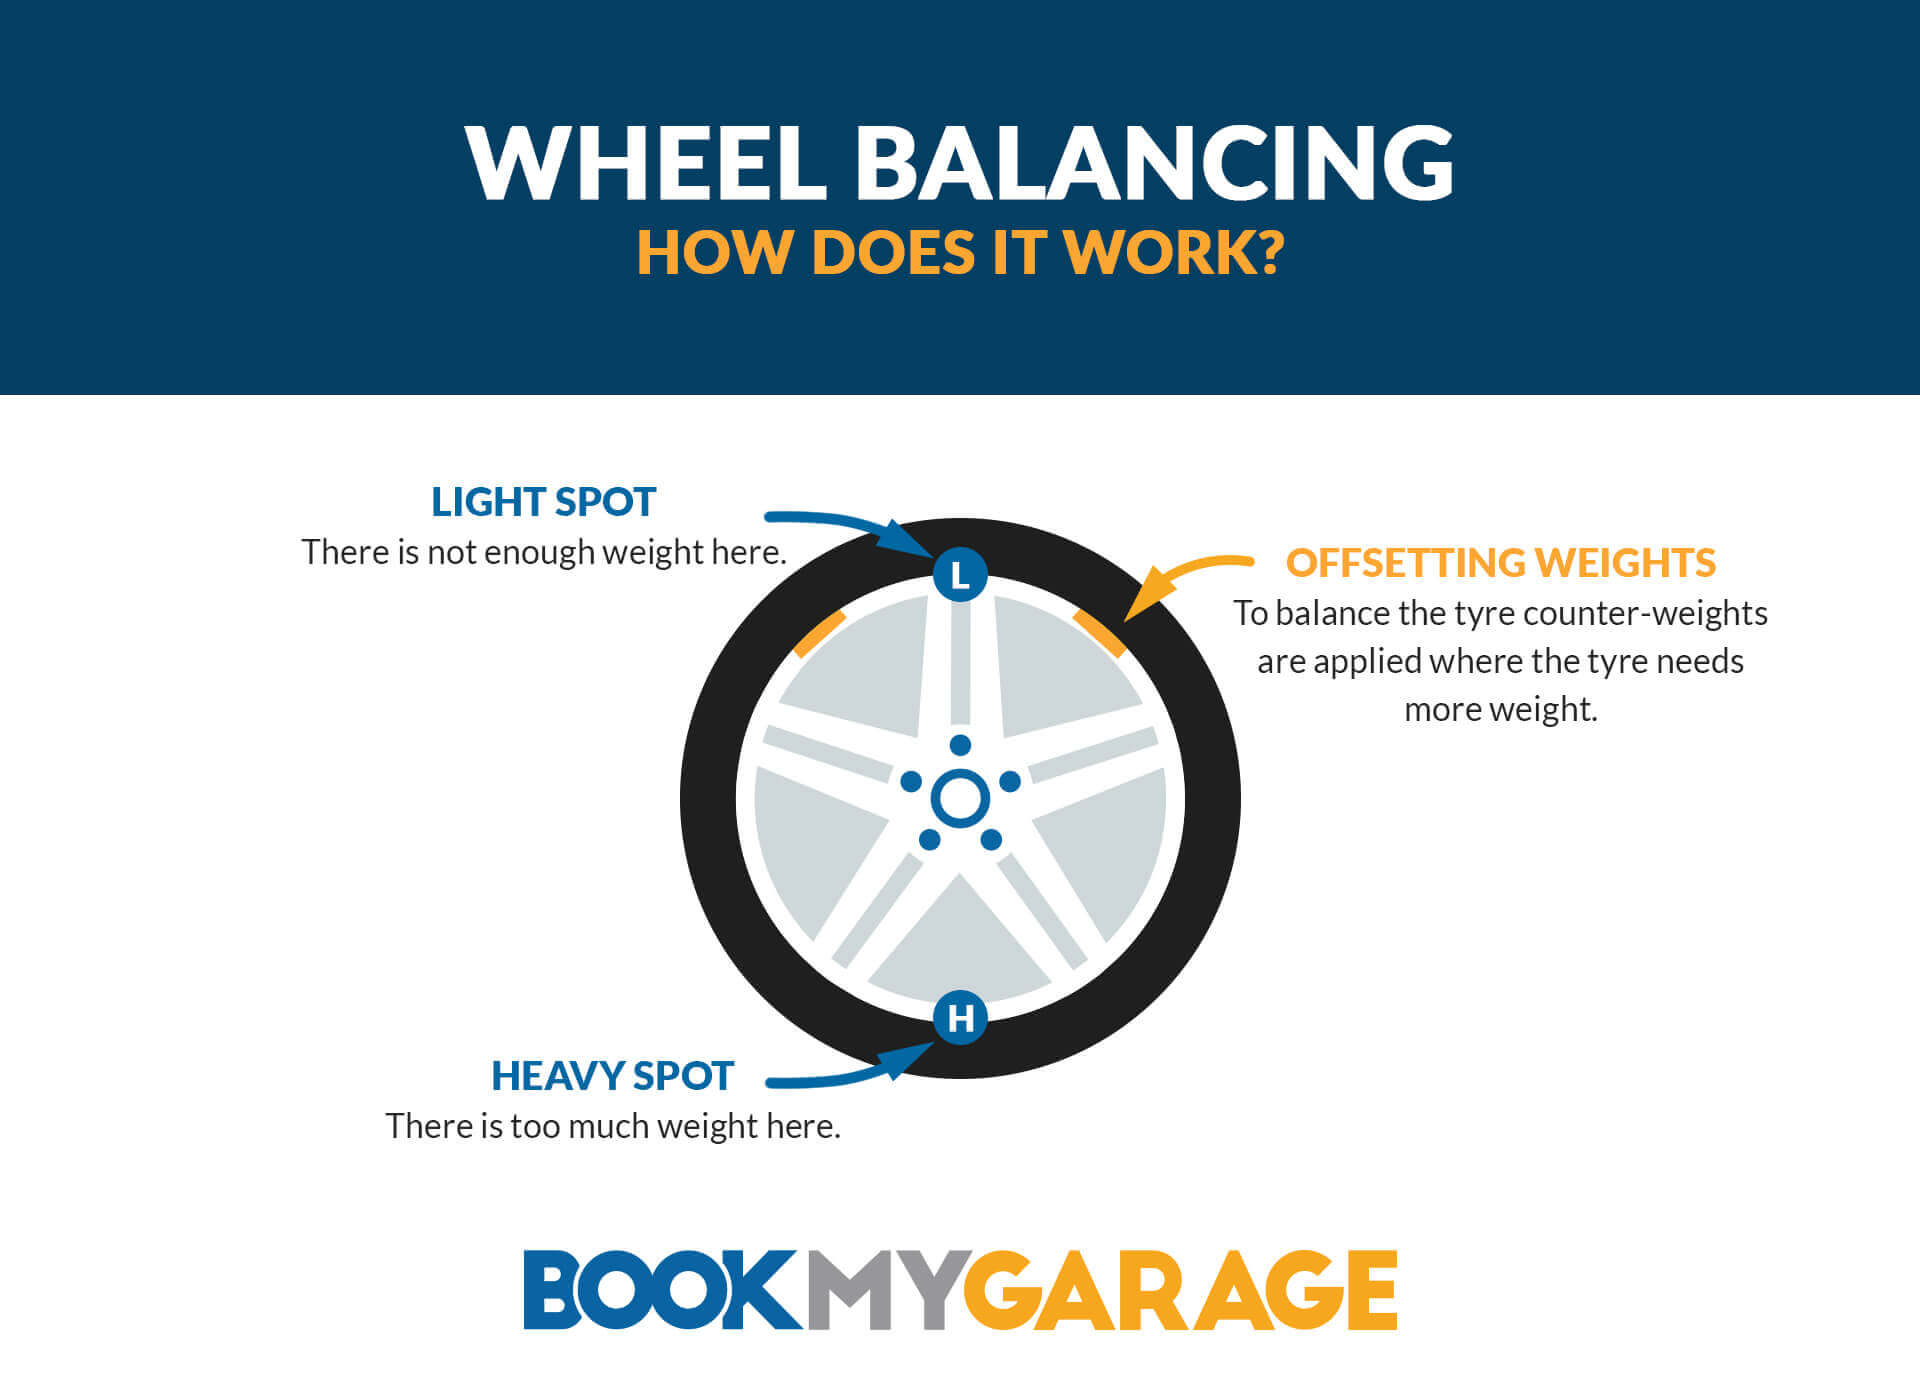 BookMyGarage wheel balancing infographic showing offsetting weights being placed on a wheel to improve light spots (not enough weight) and mitigate heavy spots (too much weight).